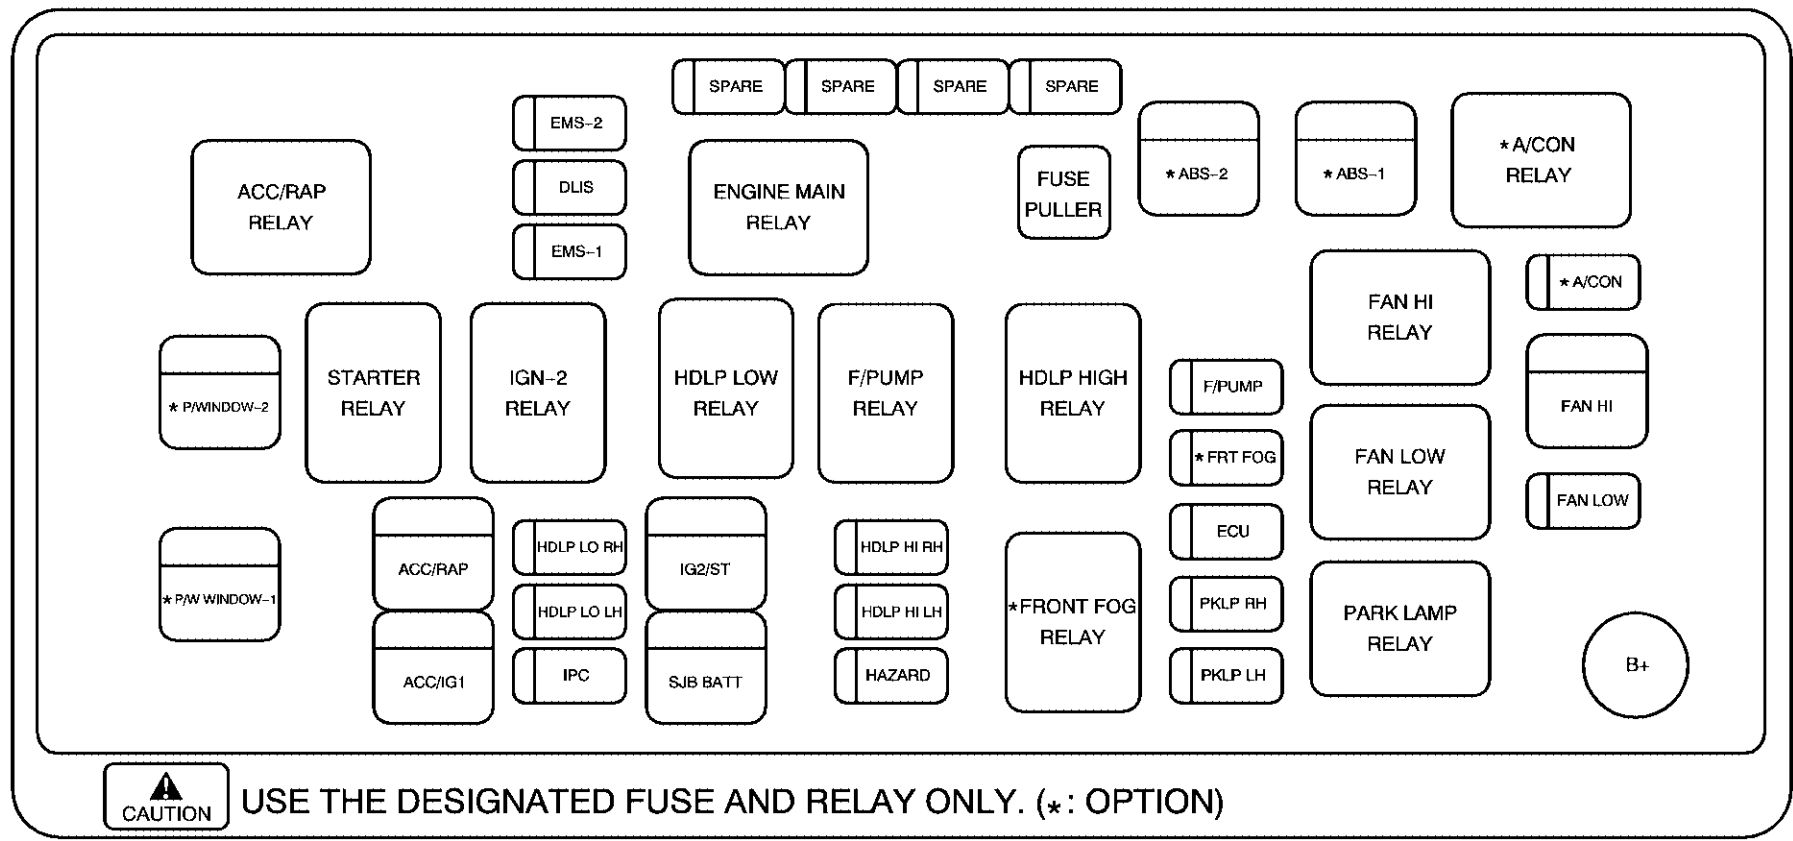 Fuse Panel Diagram For 2005 Chevy Aveo - Wiring Diagram | 2004 Chevy Aveo Fuse Diagram |  | Wiring Diagram